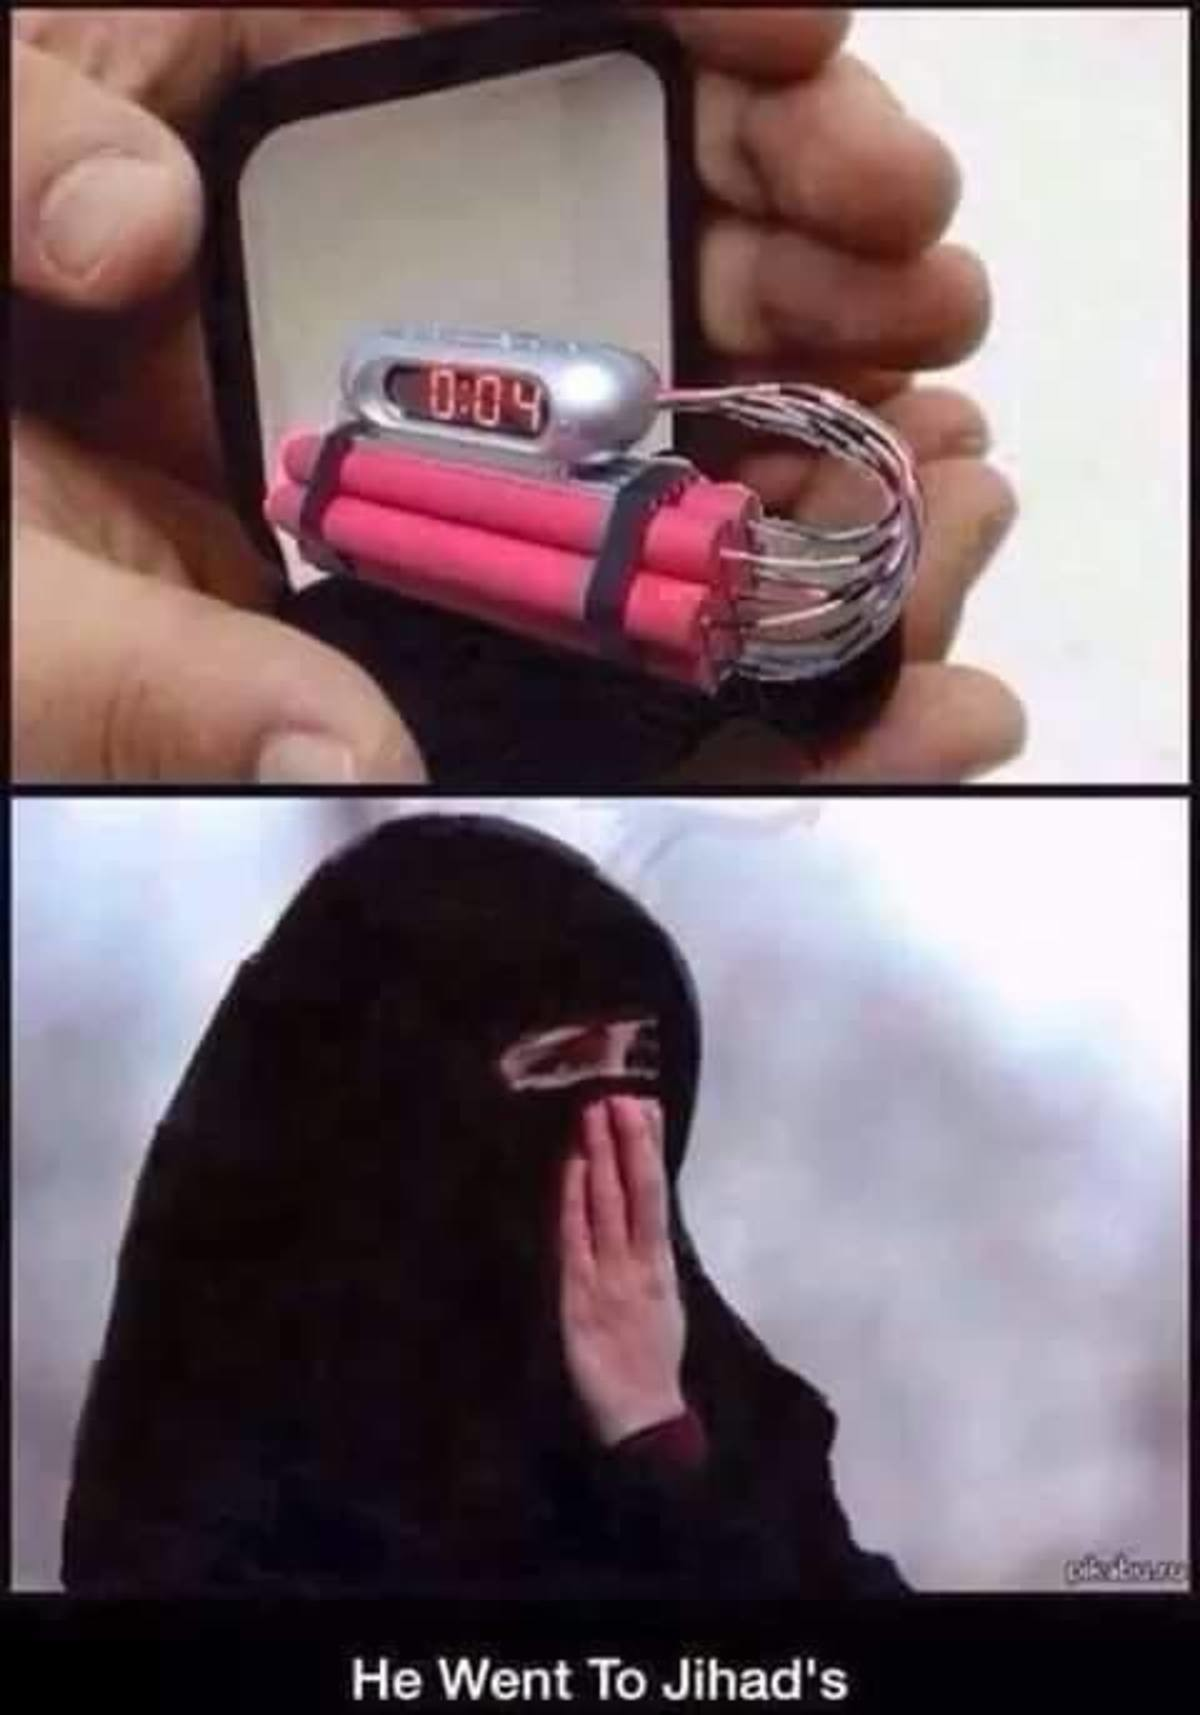 Till death do us part. join list: HumerusStuff (227 subs)Mention Clicks: 10118Msgs Sent: 49954Mention History. He Went To Jihad' s. That's a nice homemade engagement ring, Ahmed.